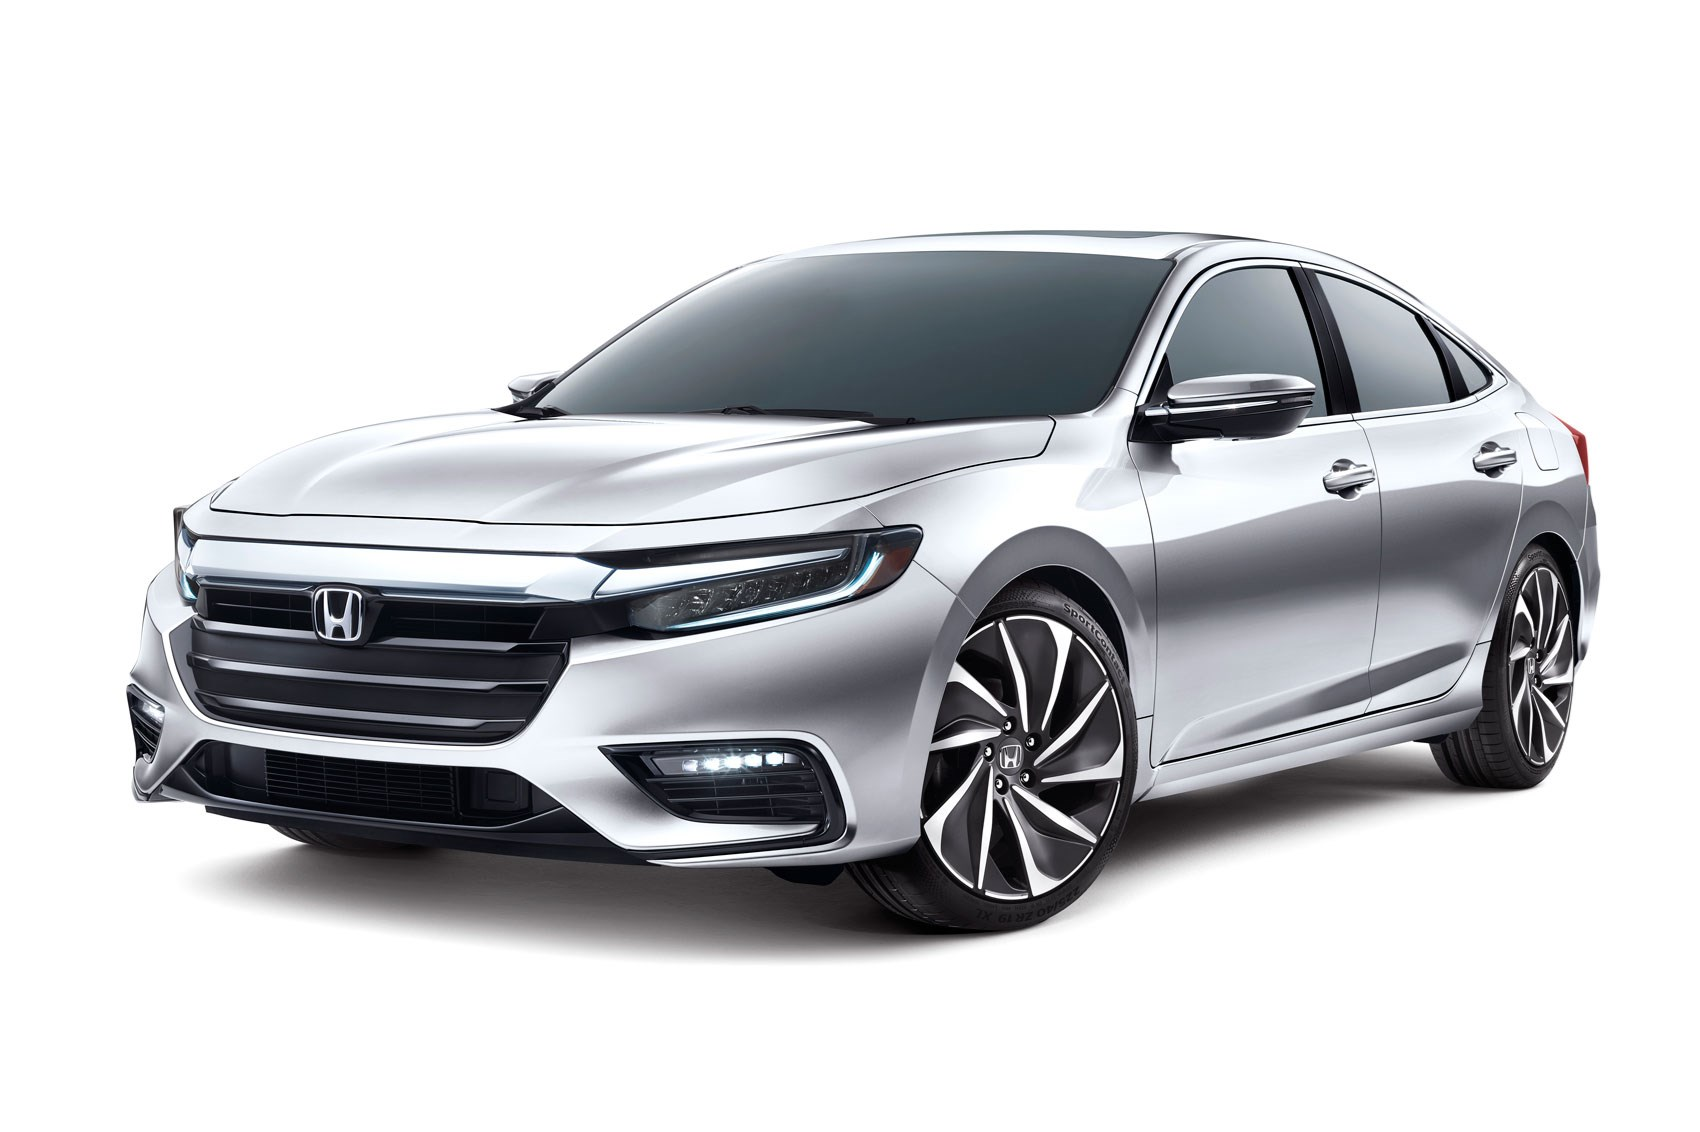 New honda insight sleek hybrid prototype 39 s specs detailed for Honda hybrid cars